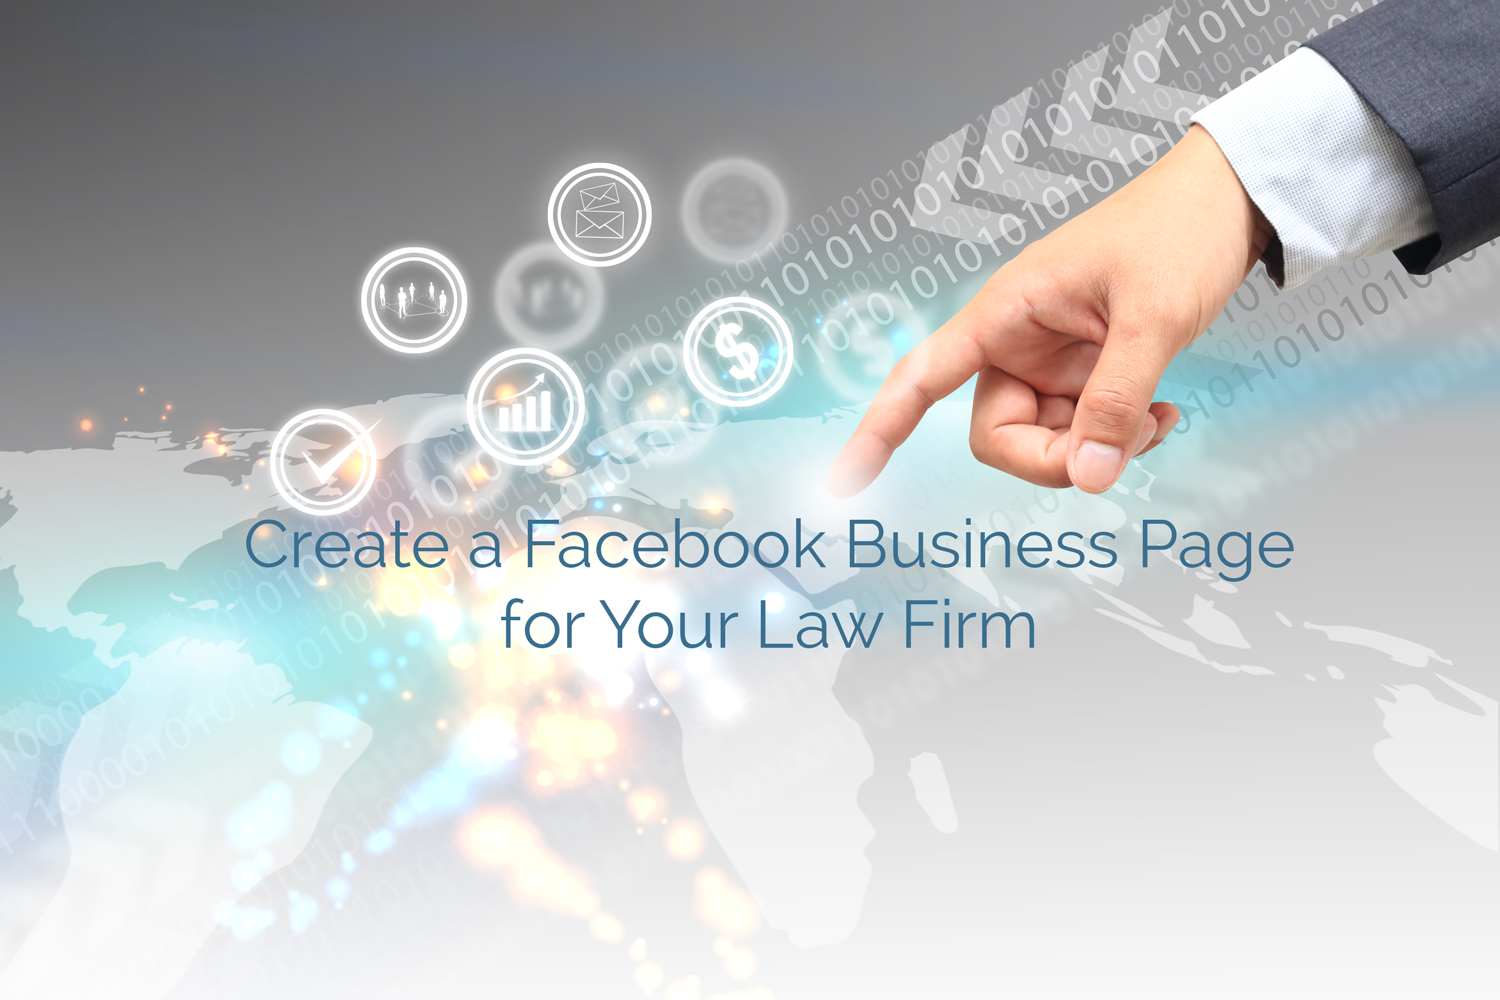 create-a-facebook-business-page-for-your-law-firm.png